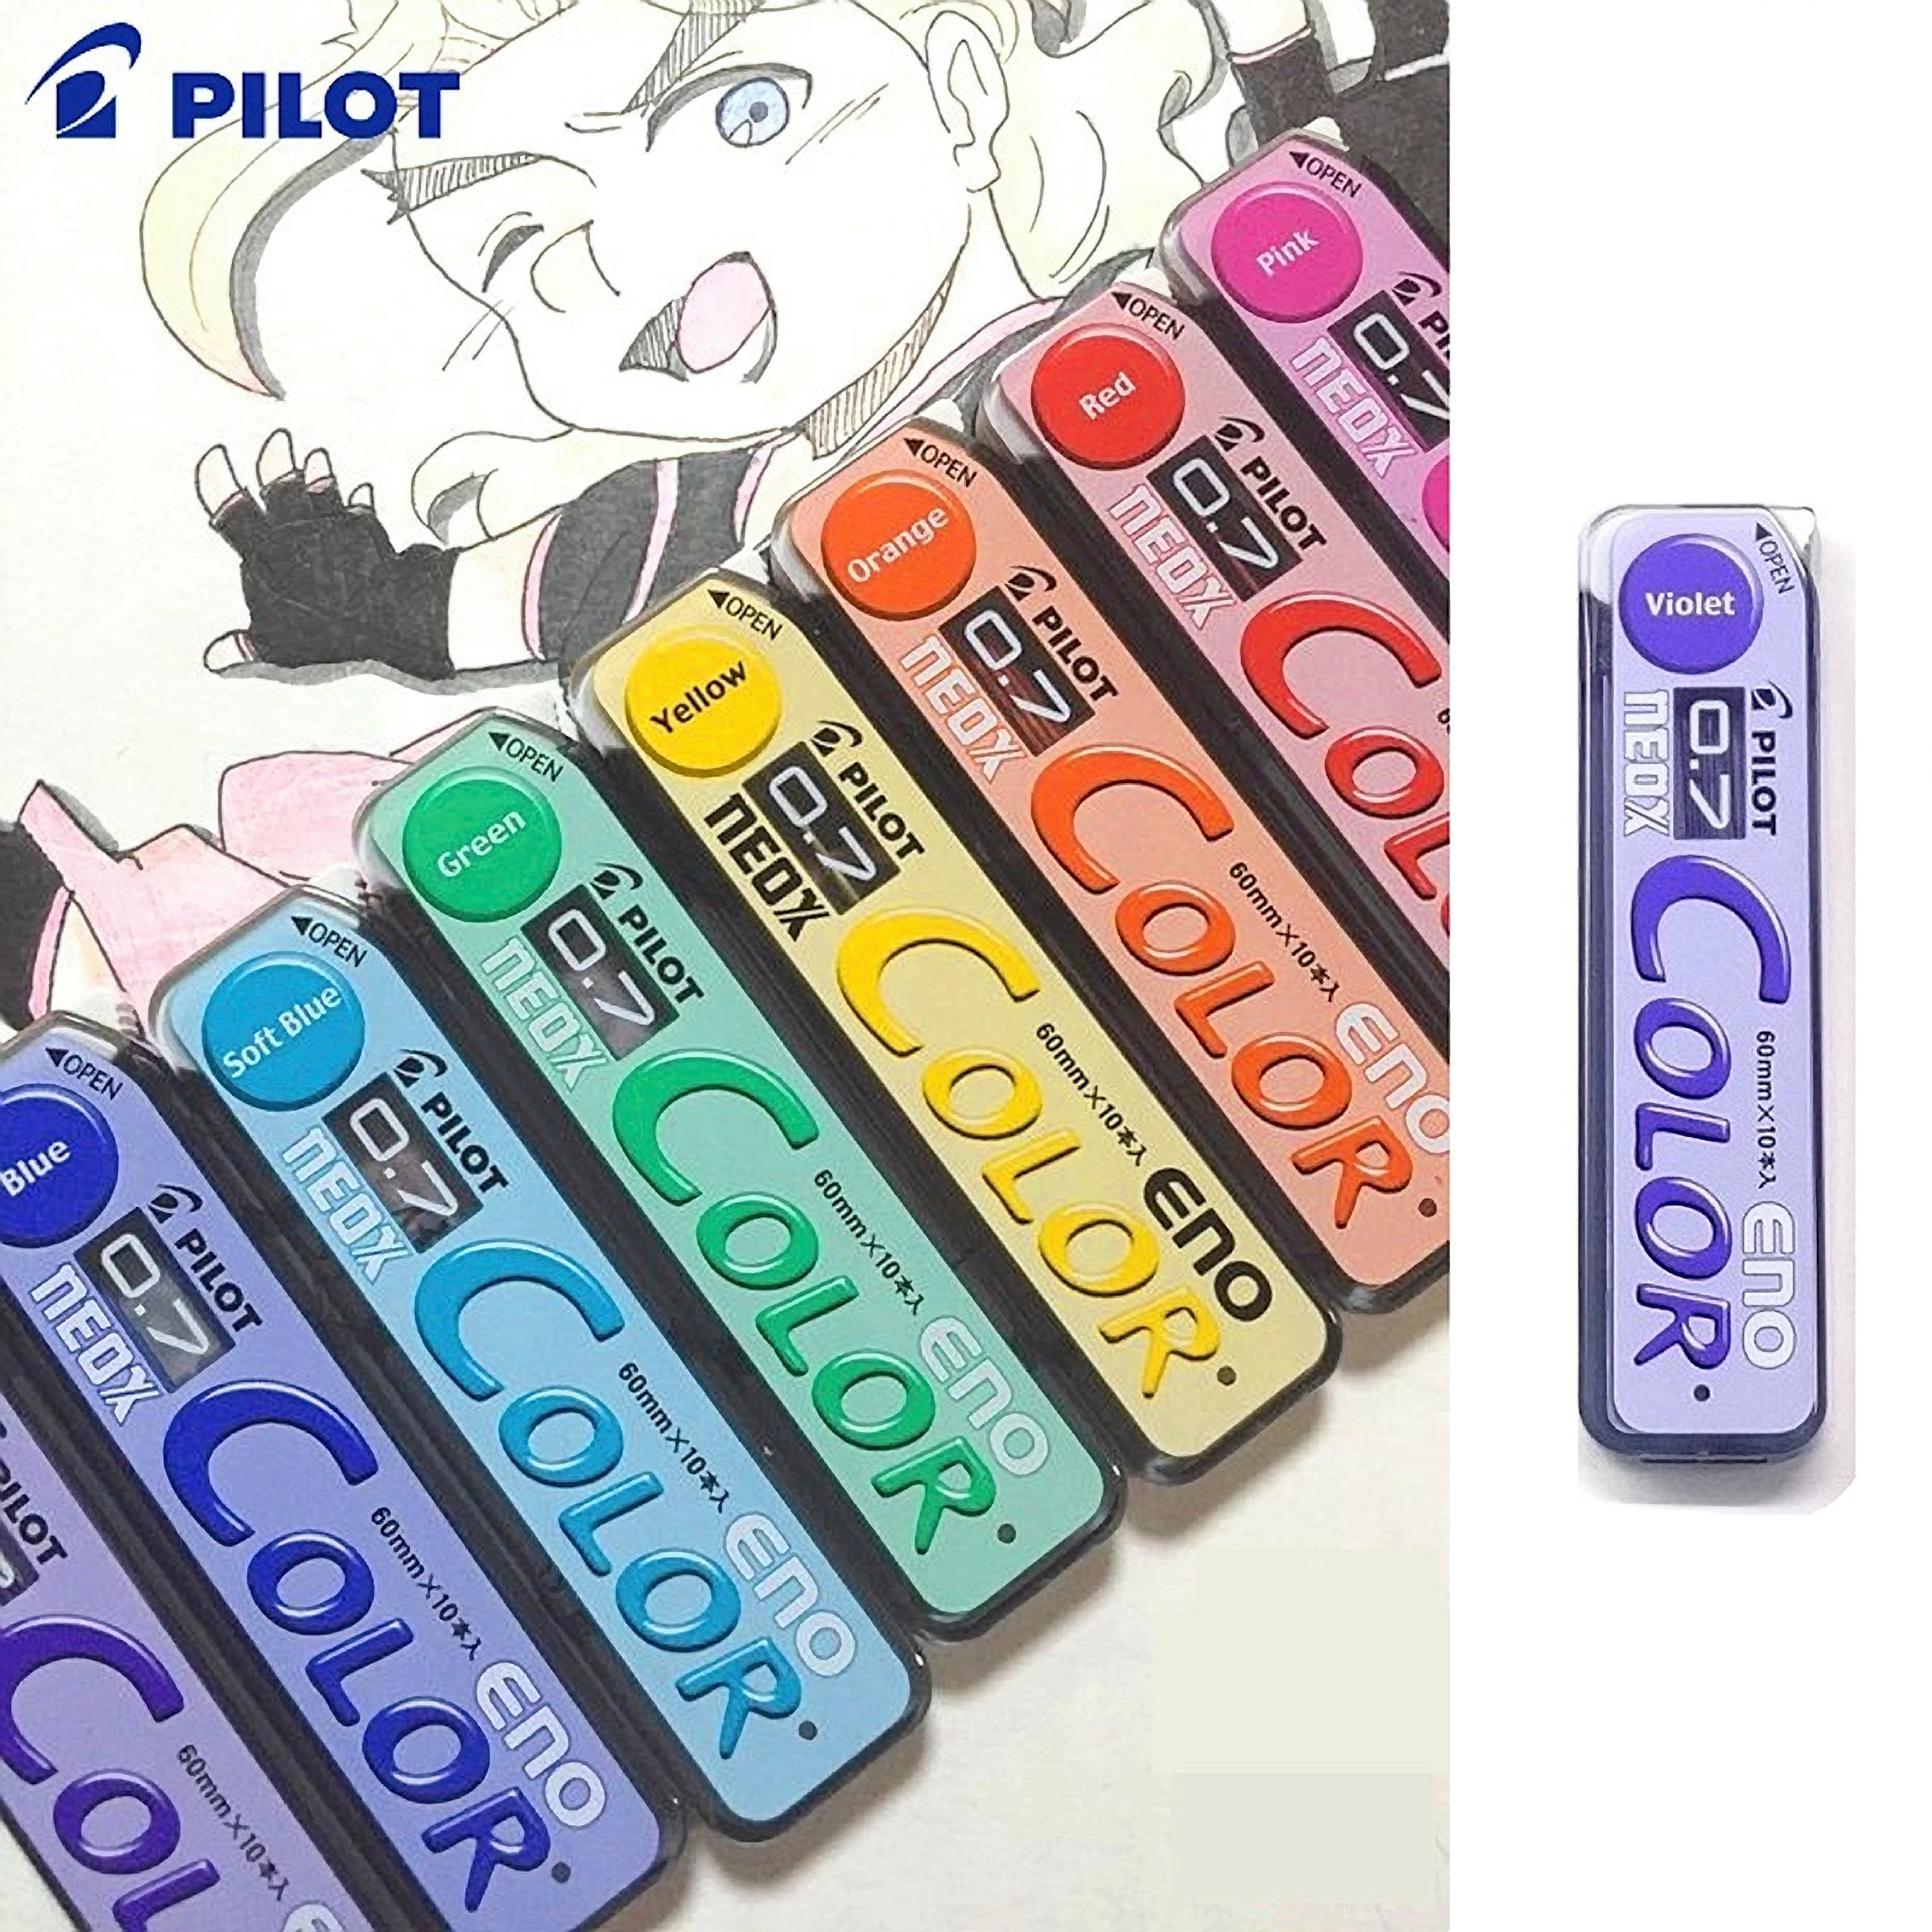 Pilot Color Eno Neox RED Erasable Lead | 0.7 mm - The Stationery Life!